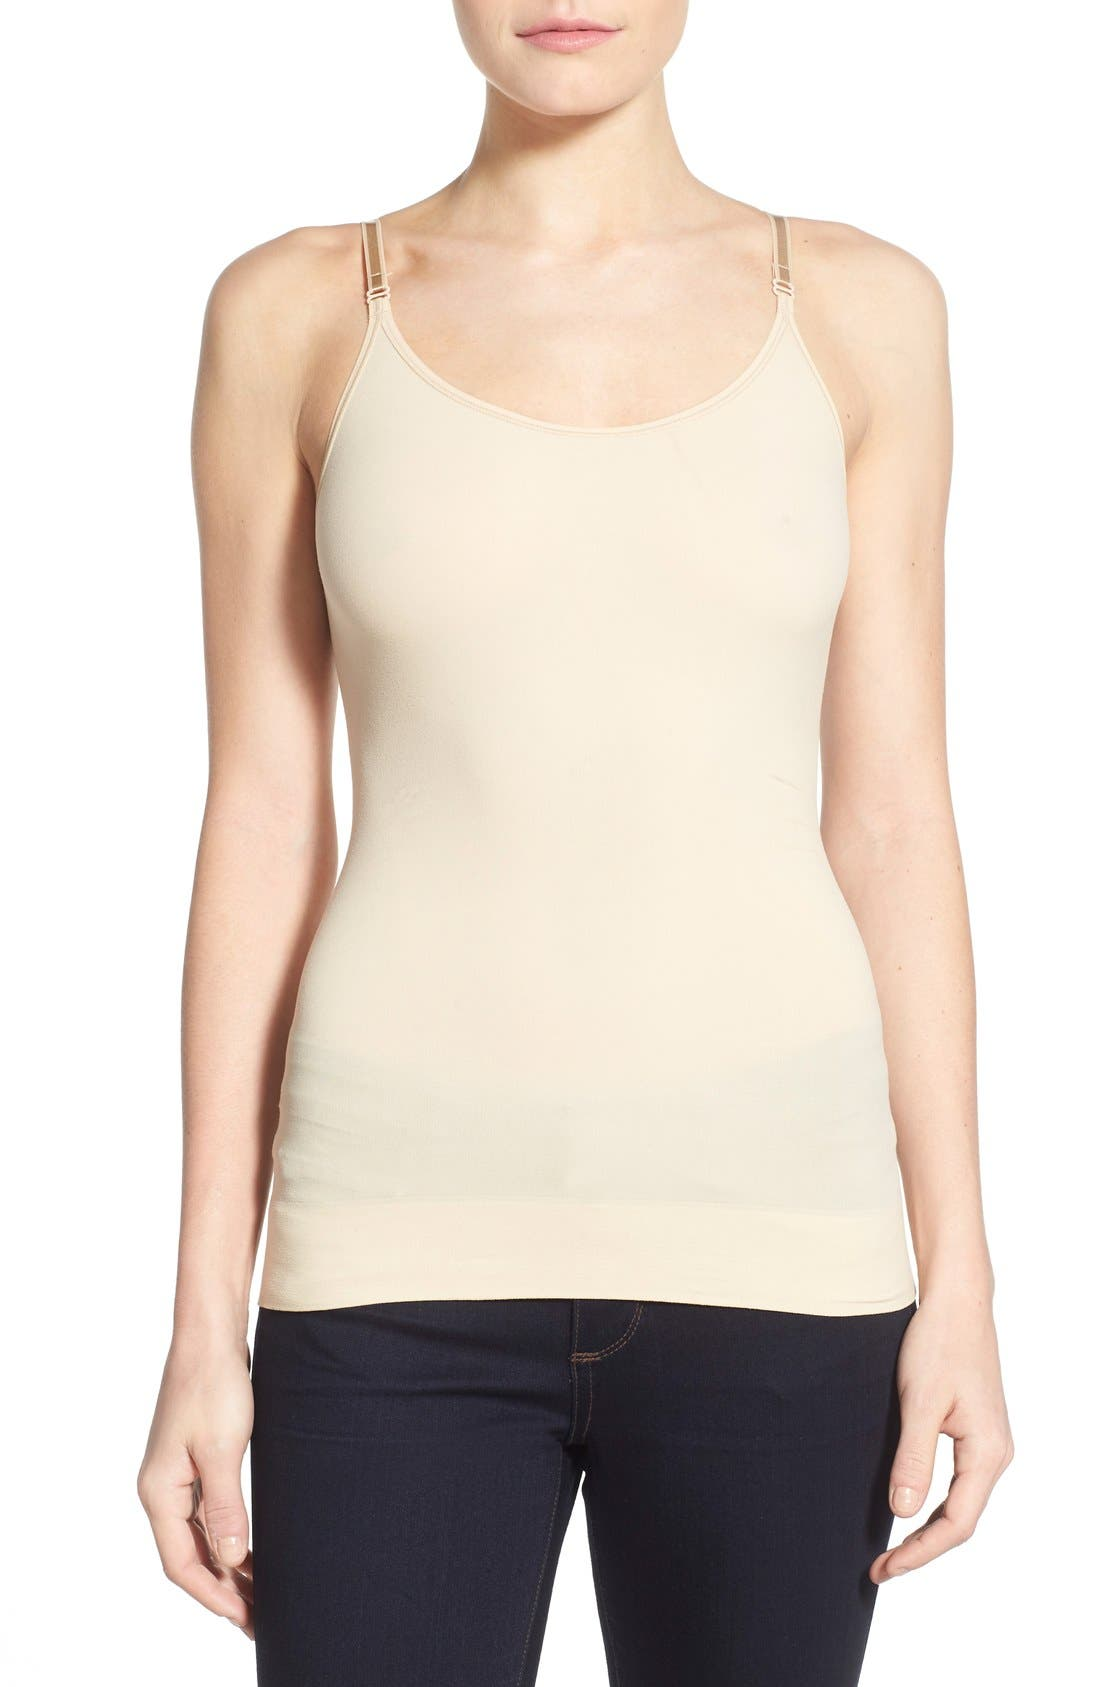 ITEM m6 Shaping Camisole